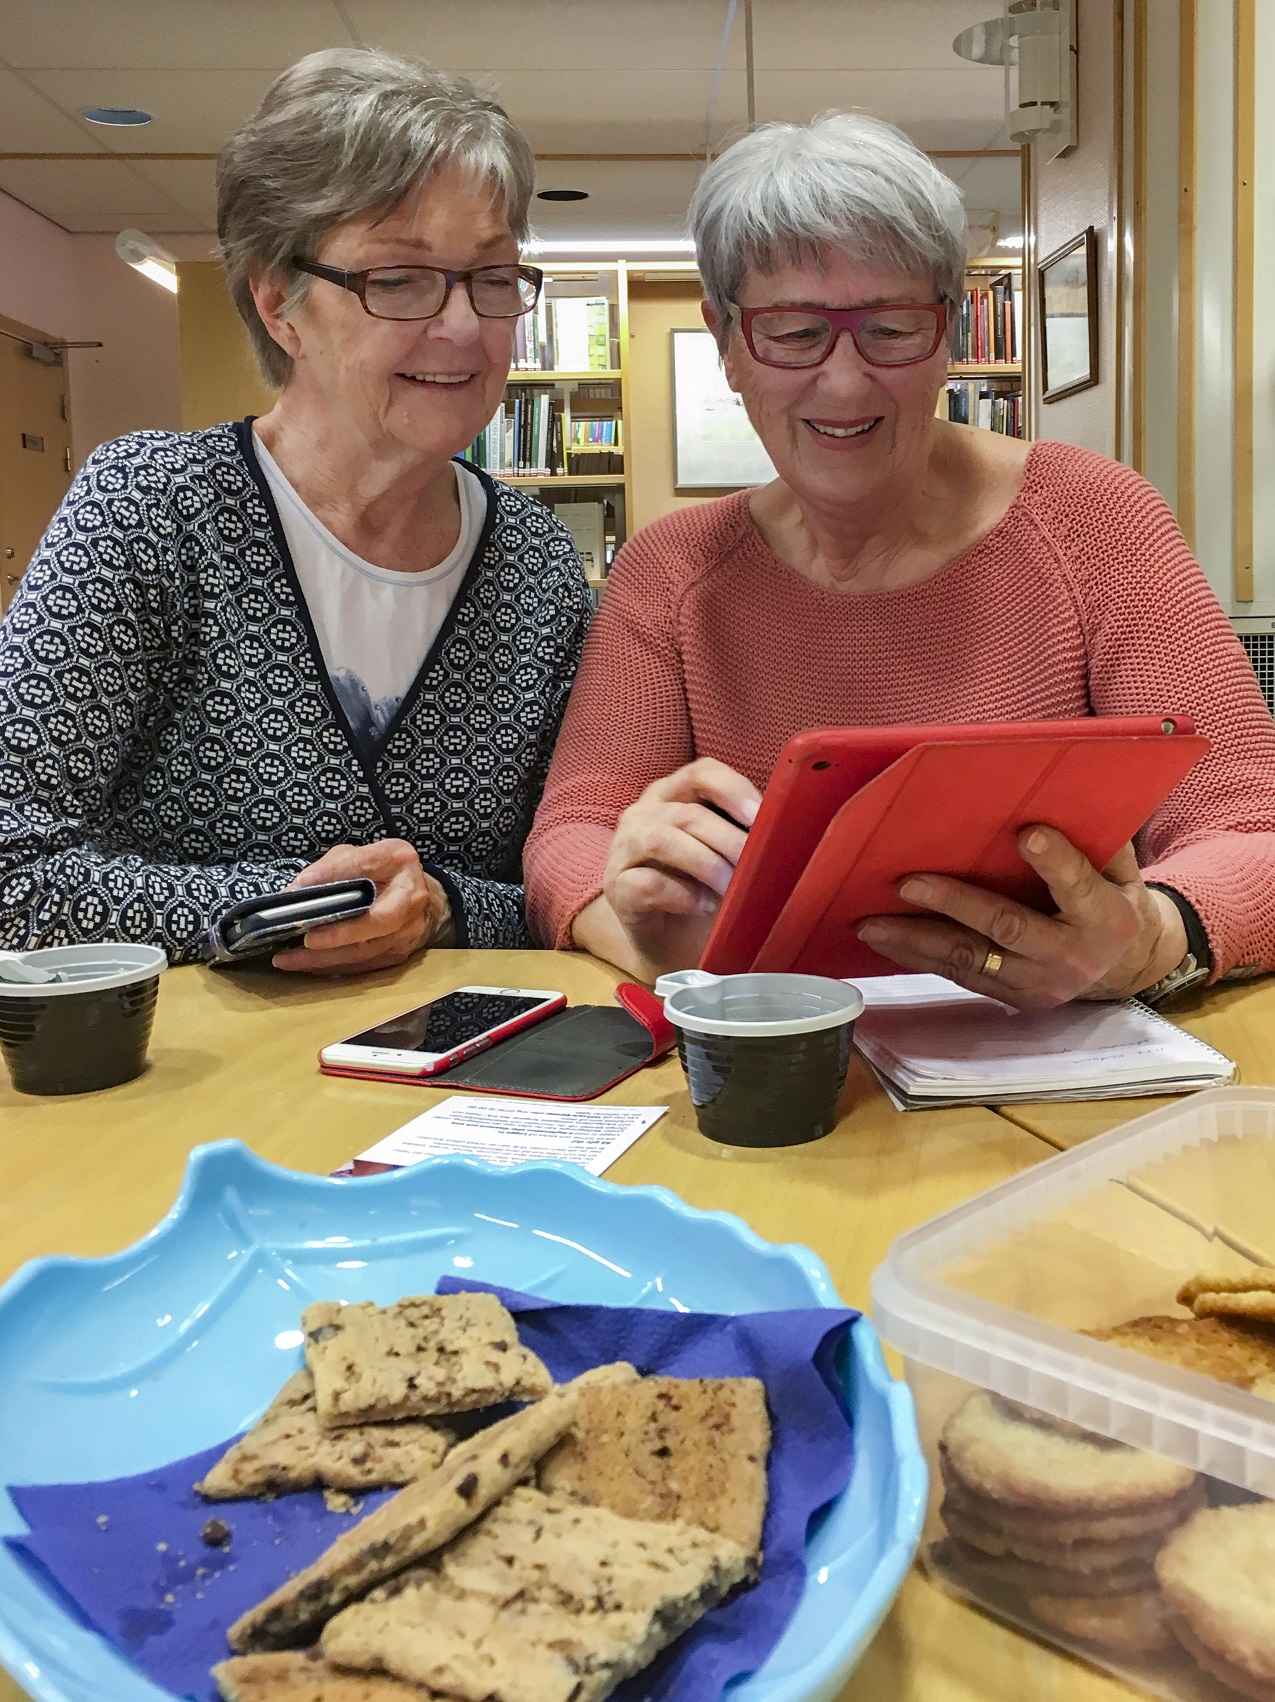 Coffee and cookies go well with learning!